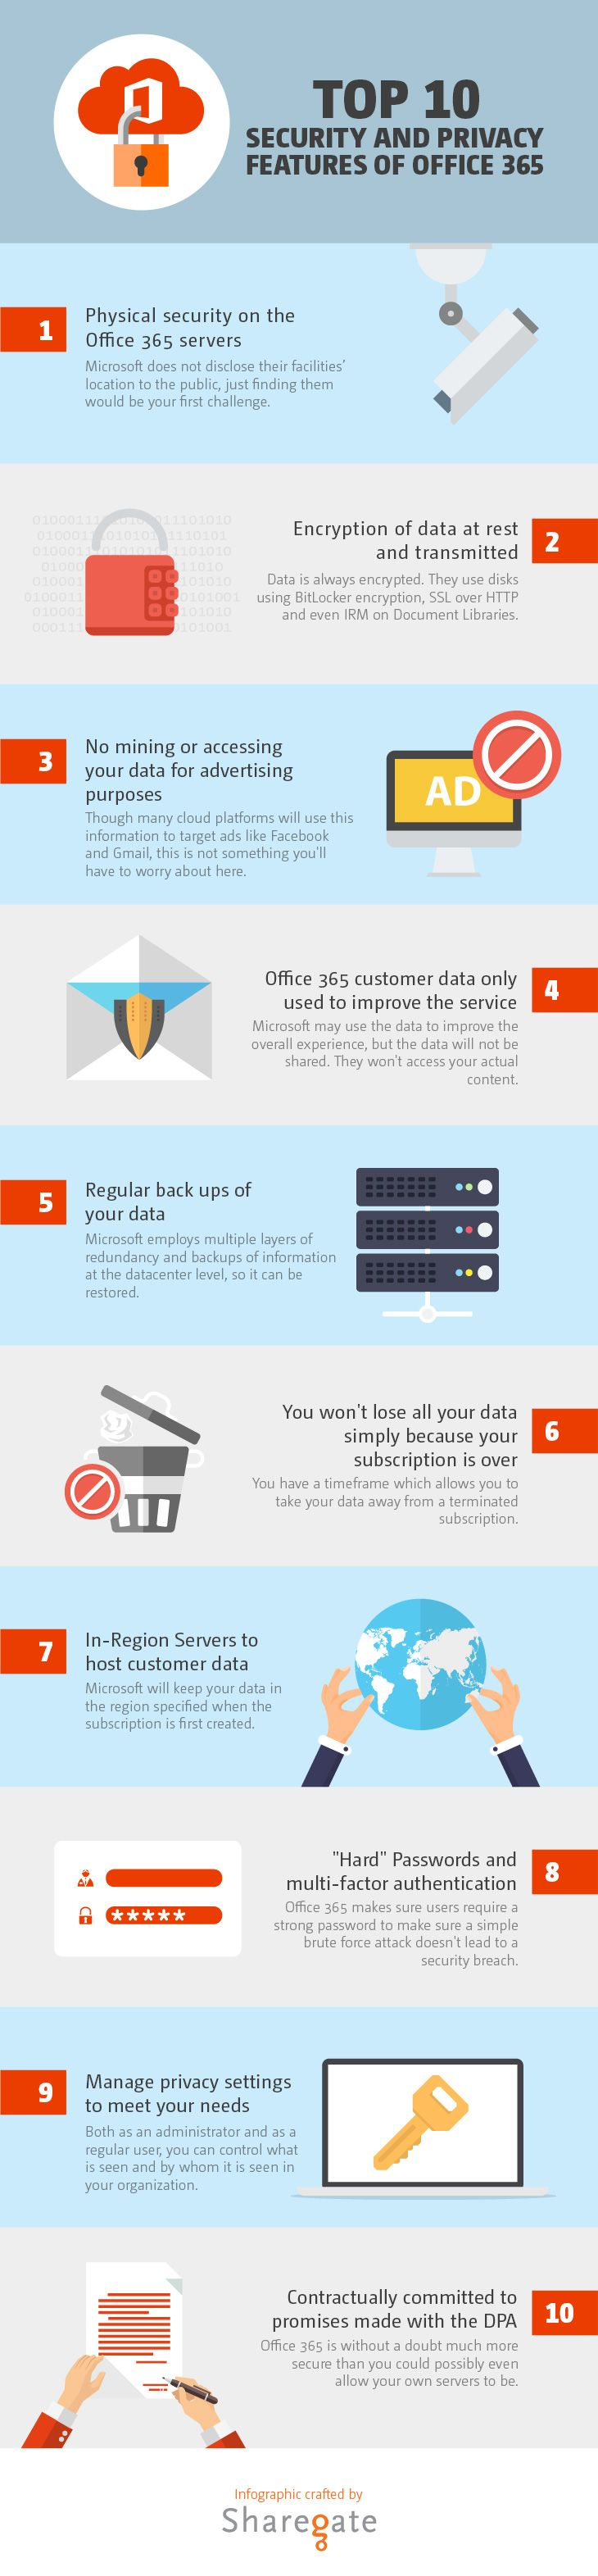 CollabShow Any Doubts Office 365 is More Secure Than Your Datacenter? [Infographic] - CollabShow